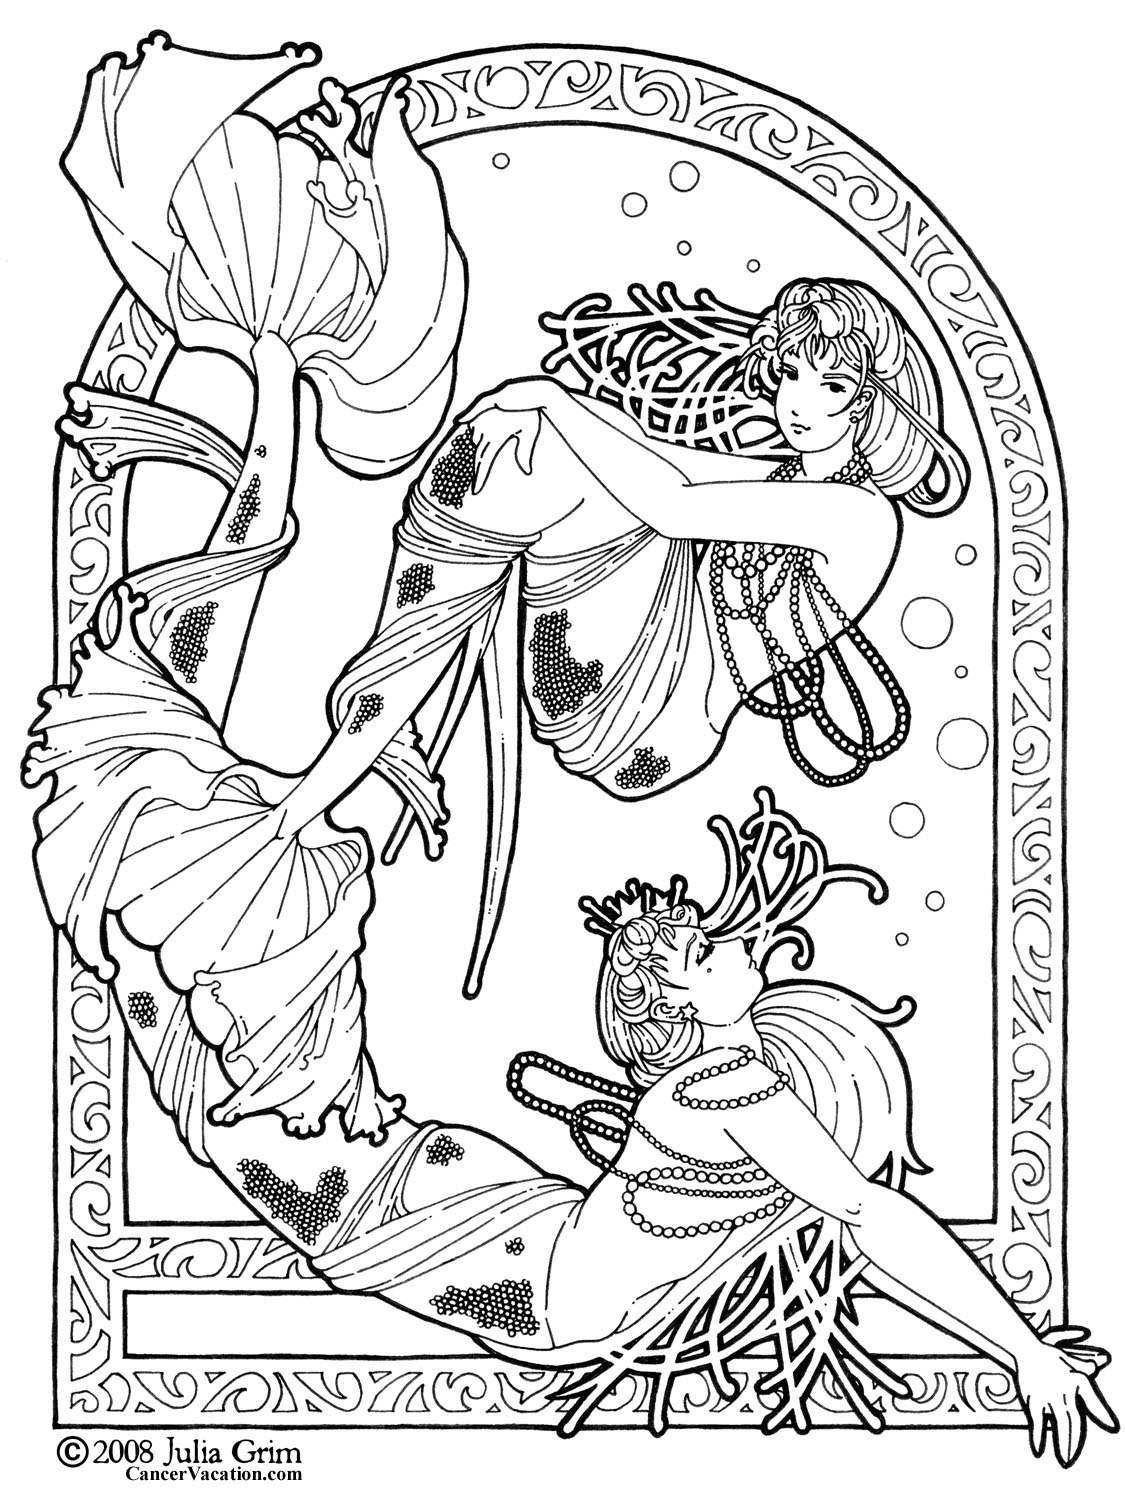 coloring pages free free printable fantasy coloring pages for kids best free pages coloring